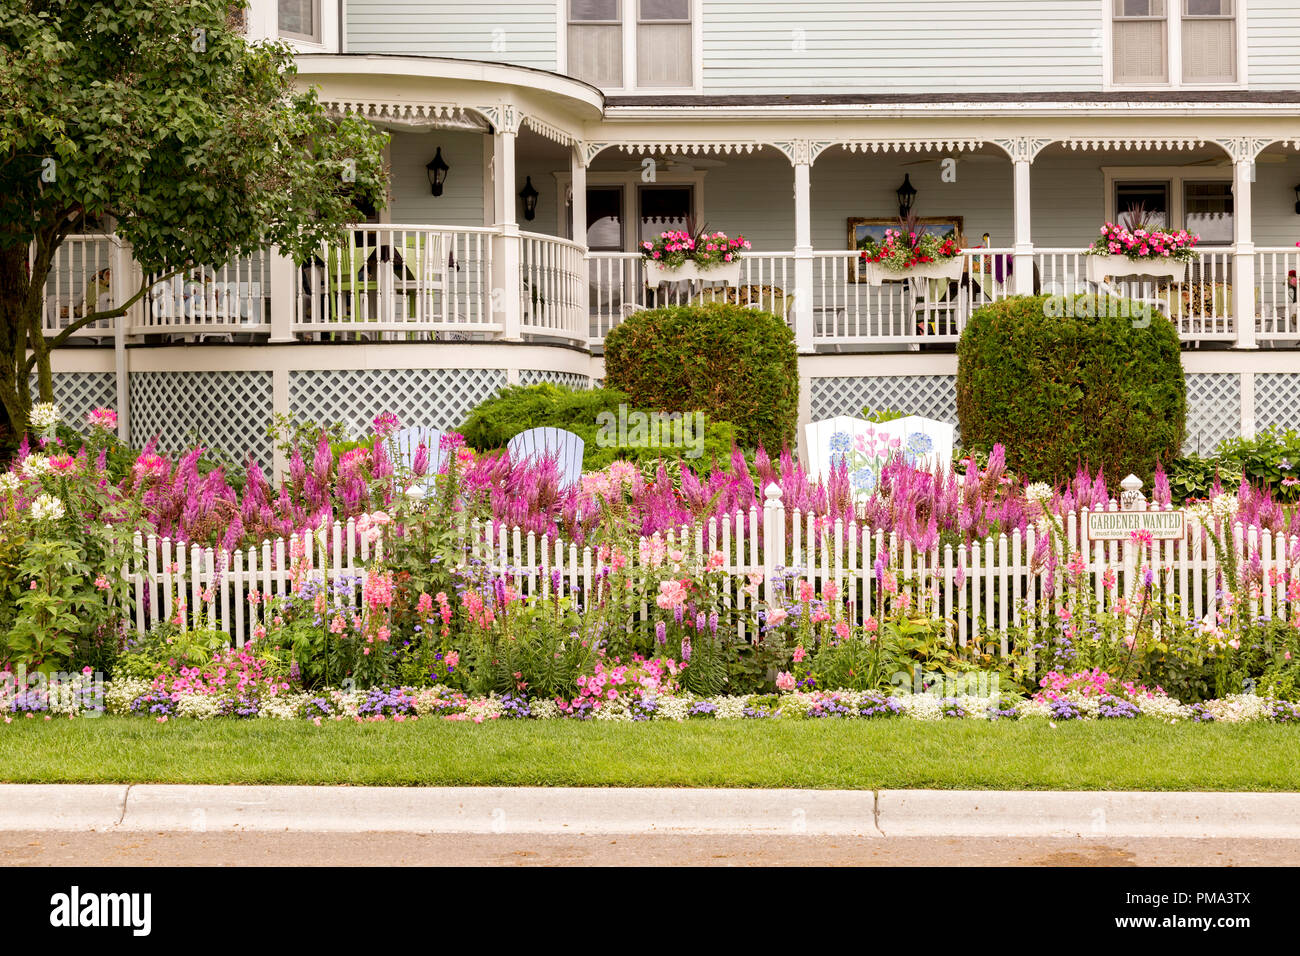 Quaint Bed And Breakfast Surrounded By Flower Gardens On Mackinac